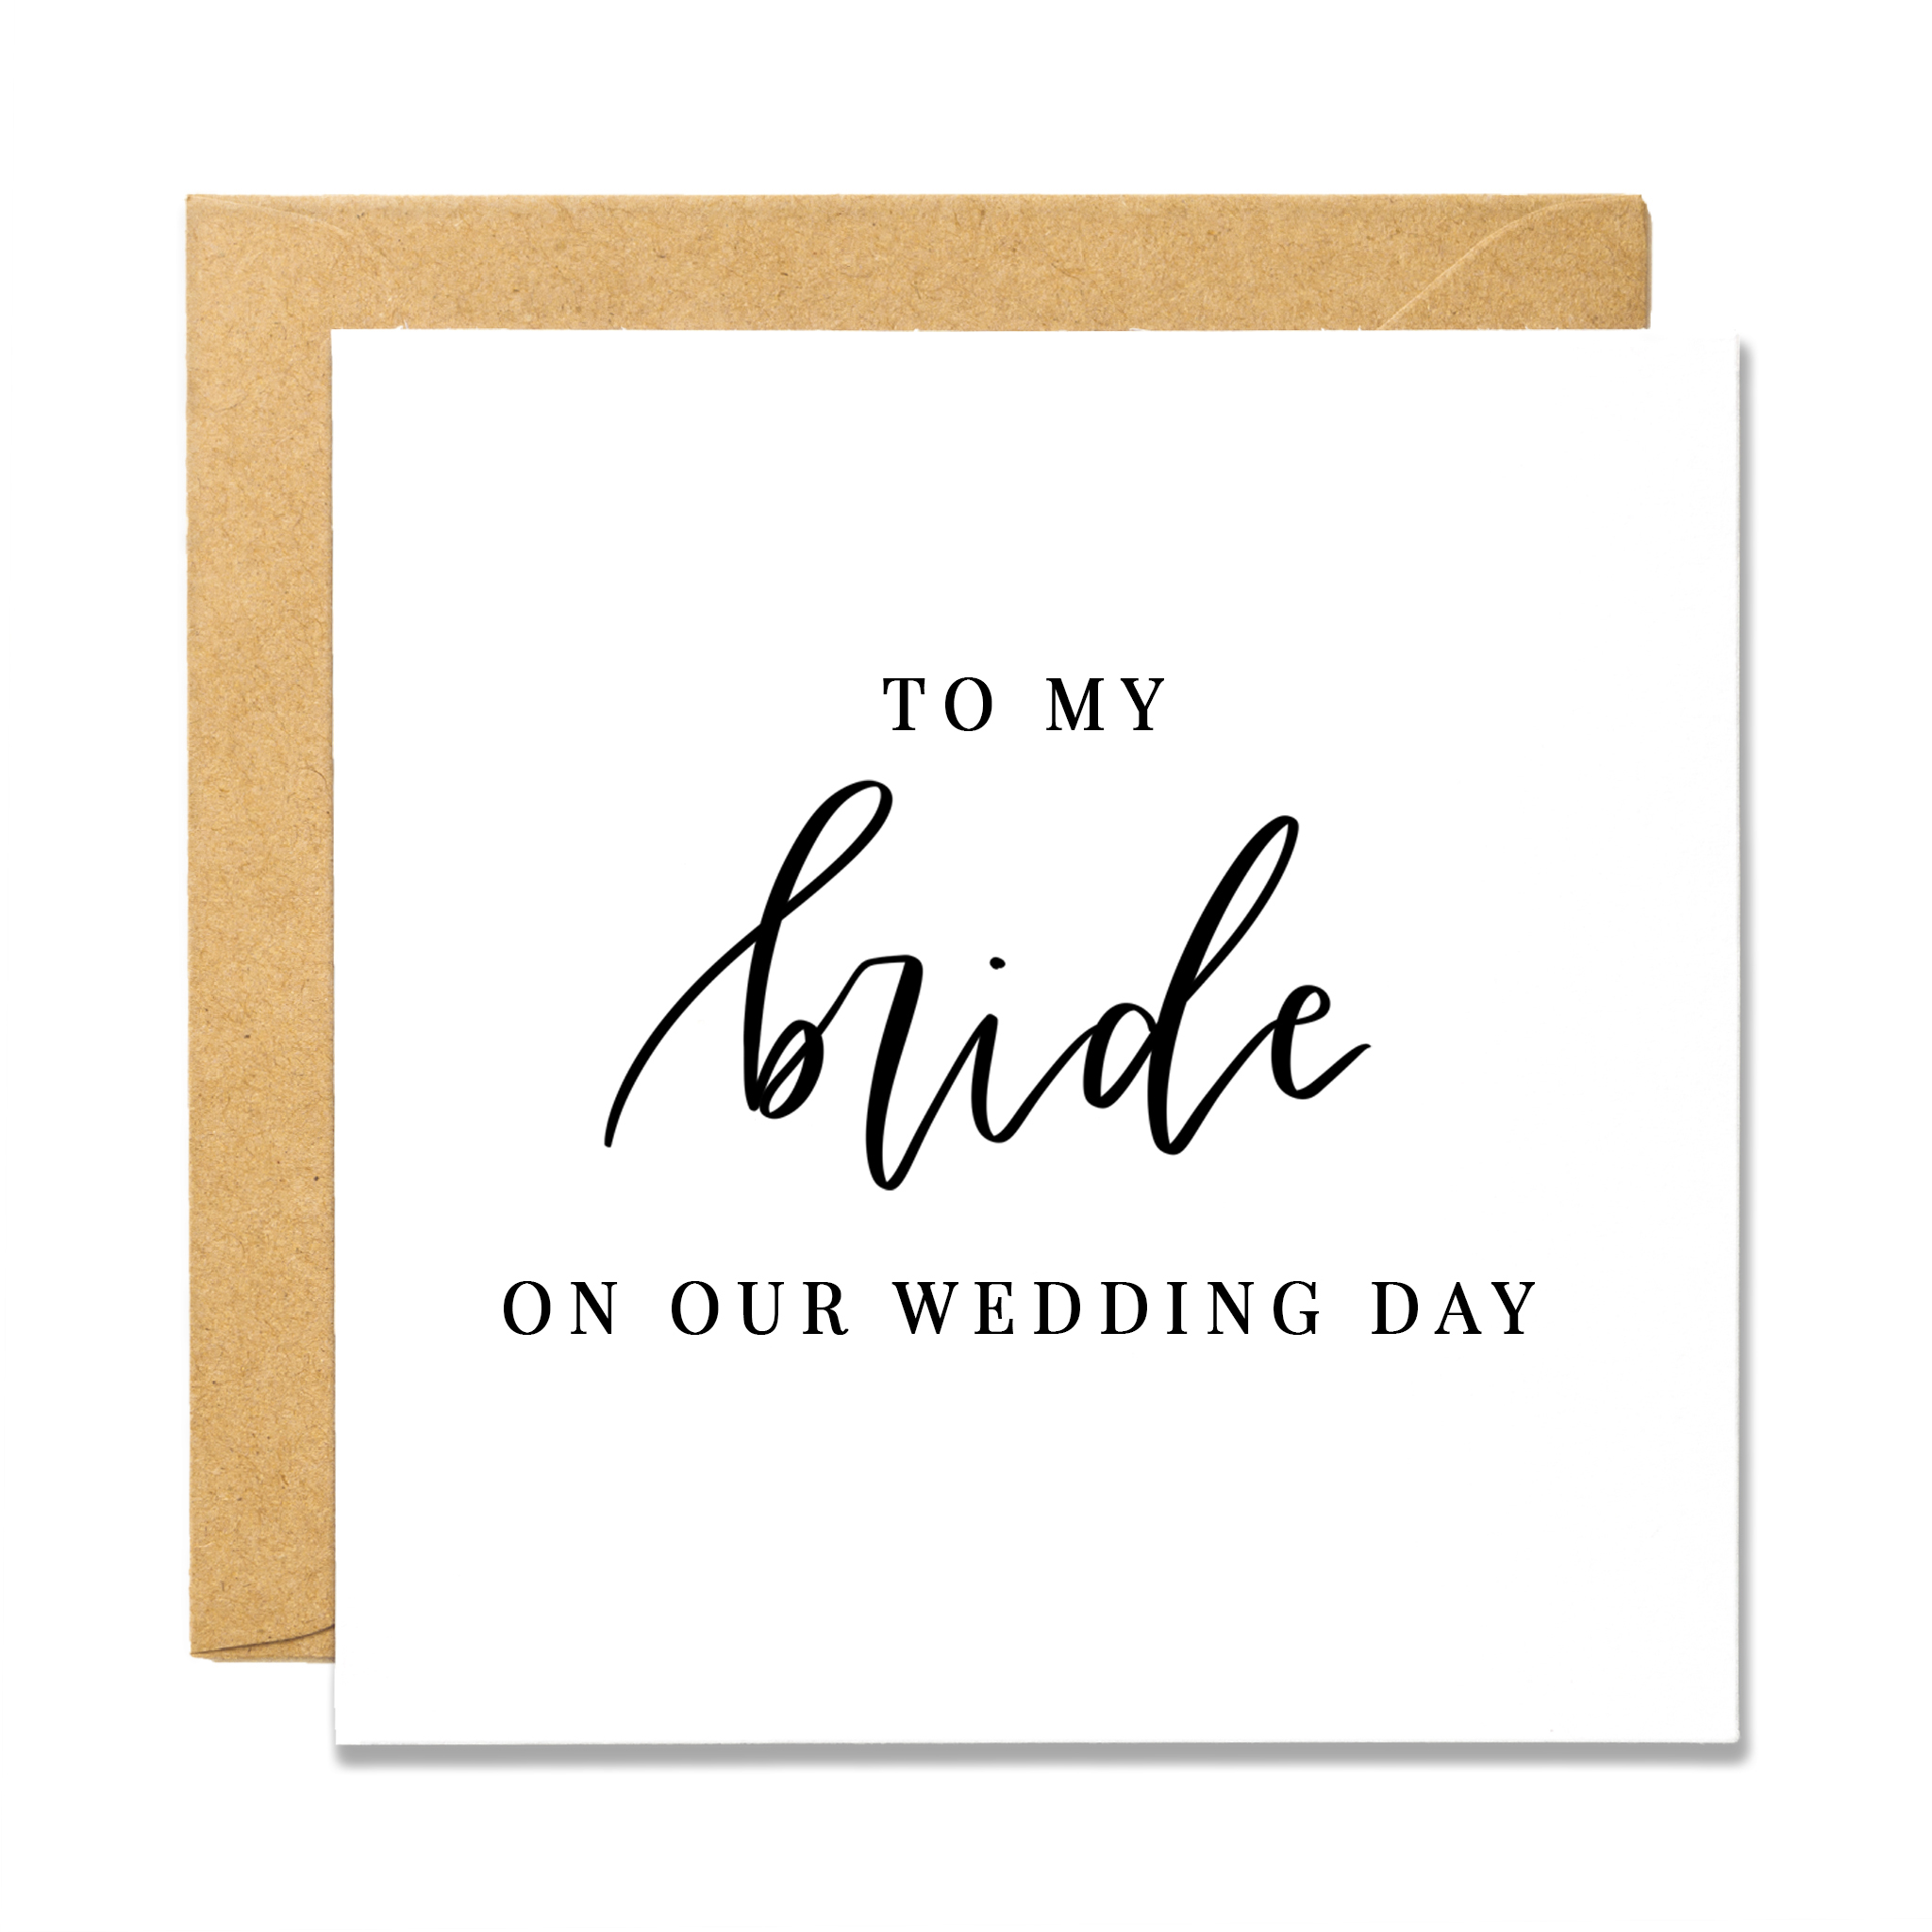 To My Bride